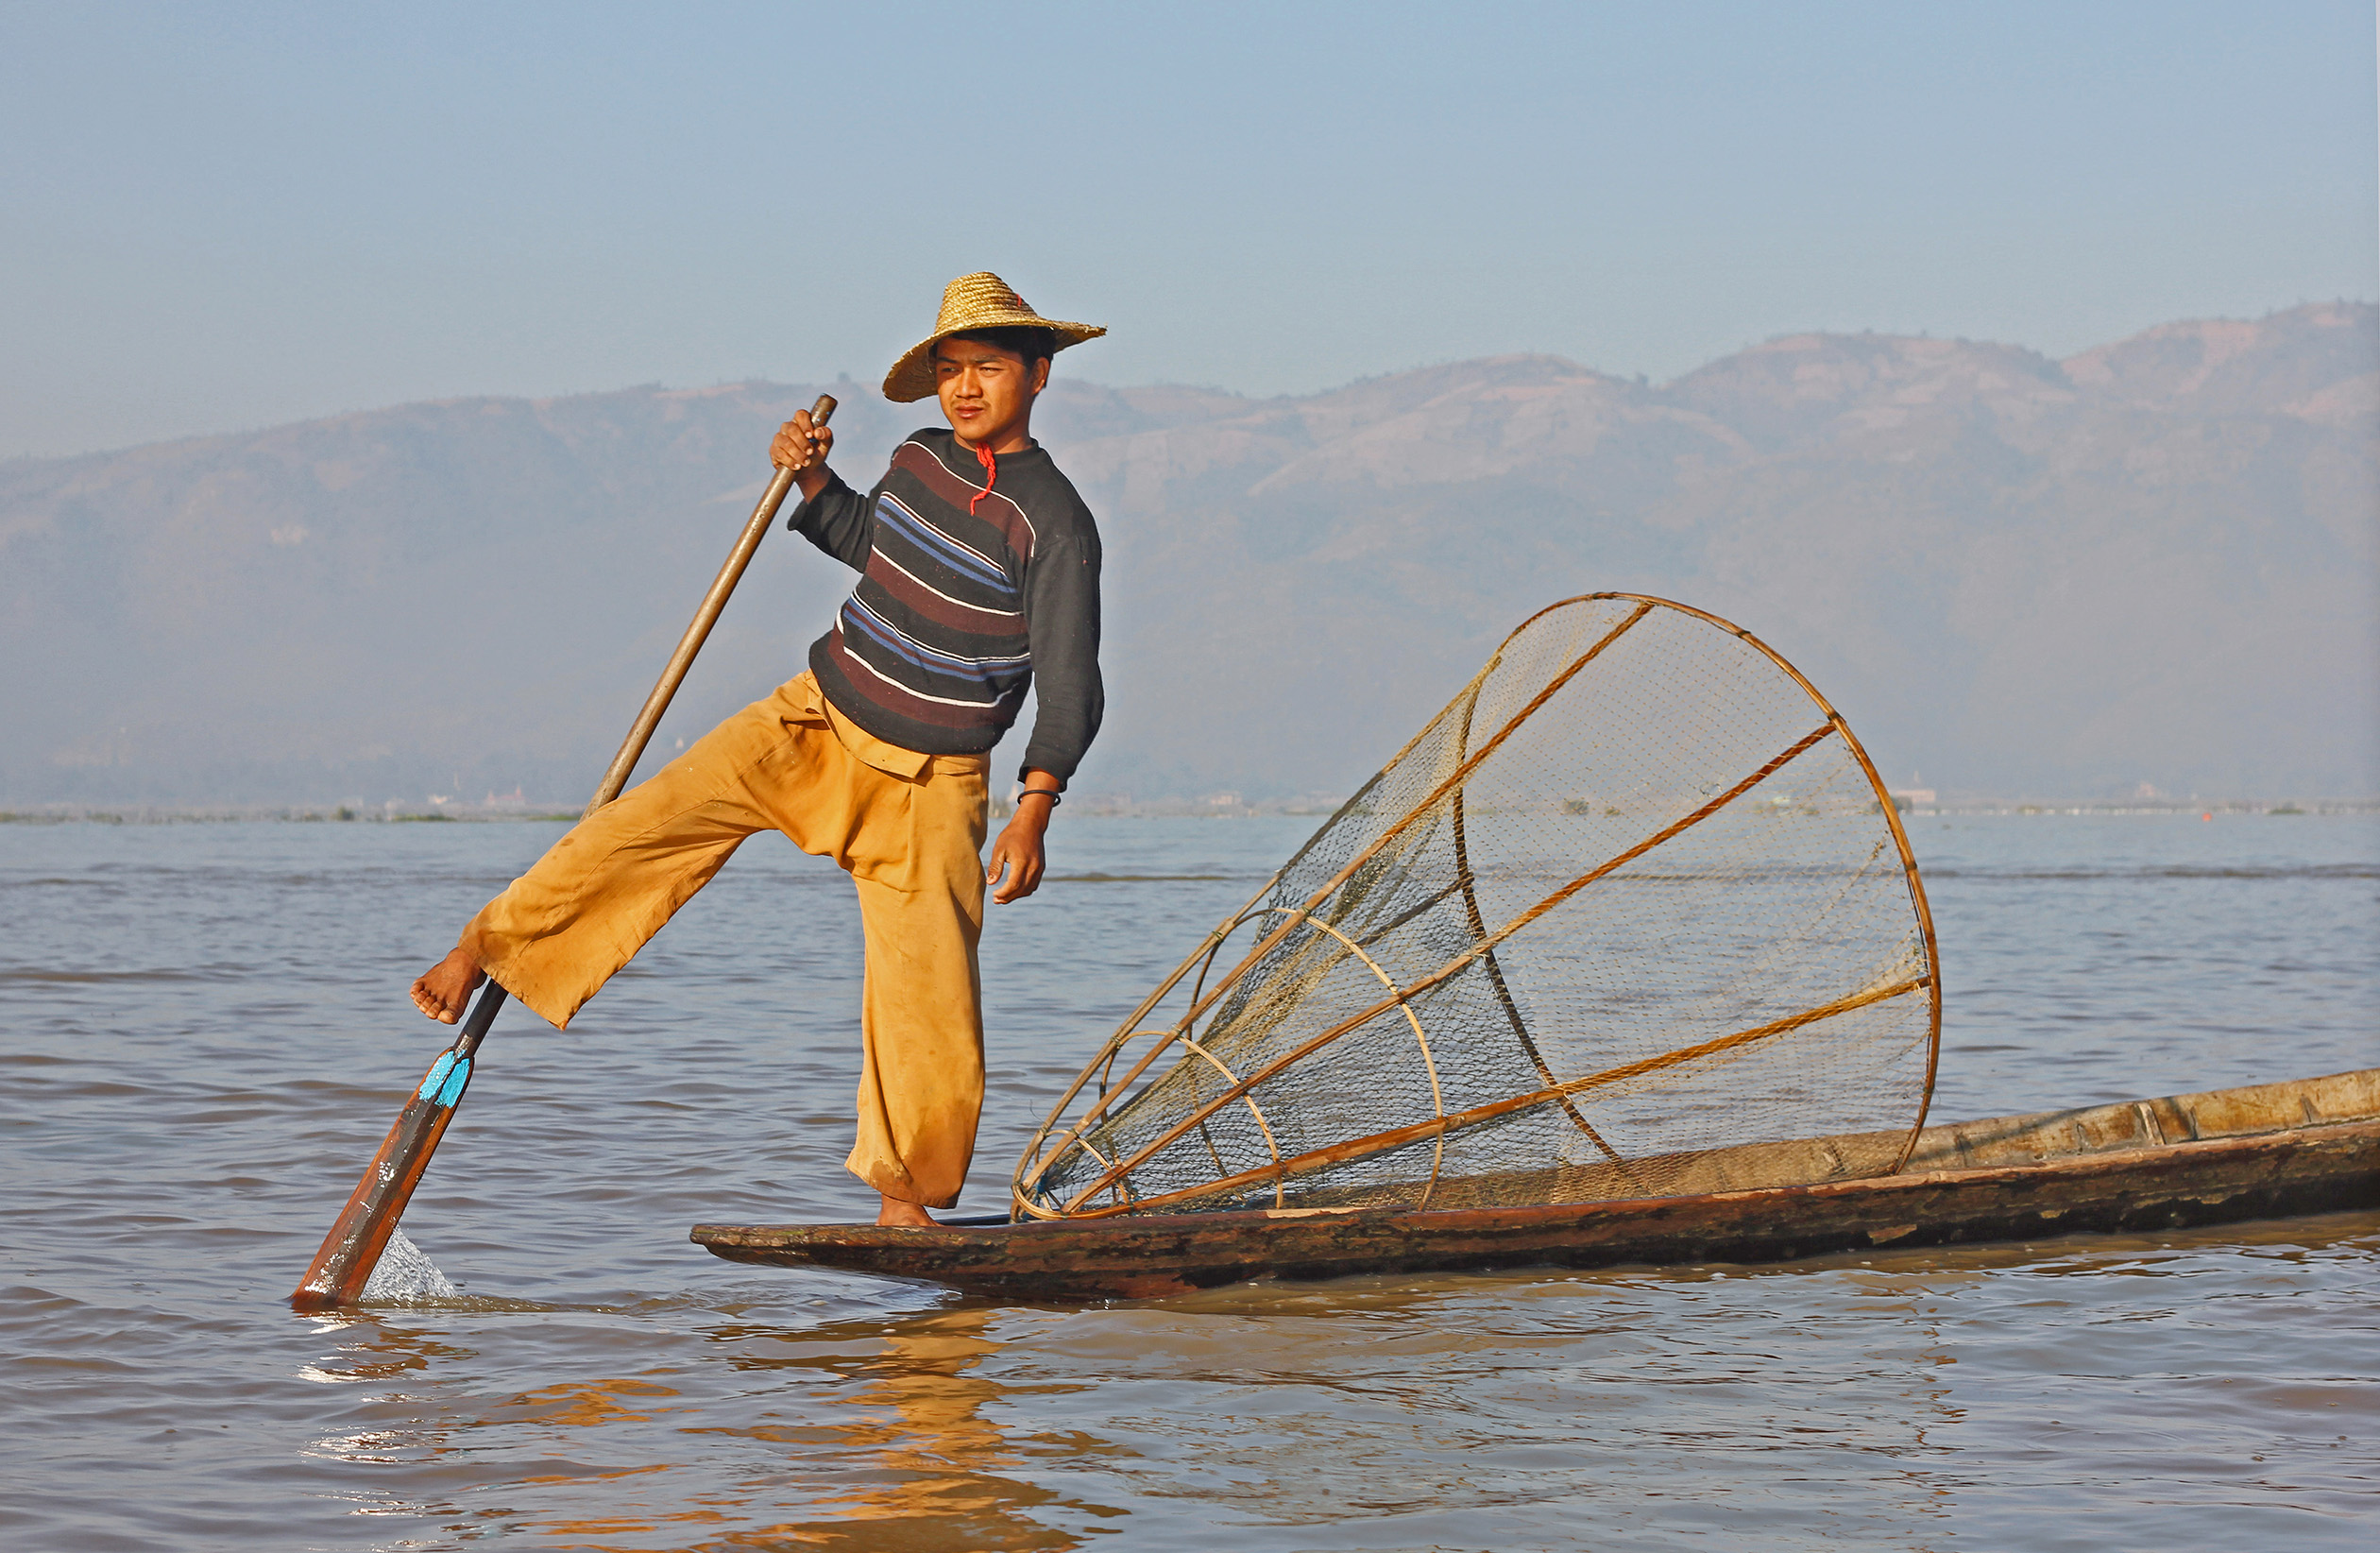 Leg rowing fisherman, Inle Lake